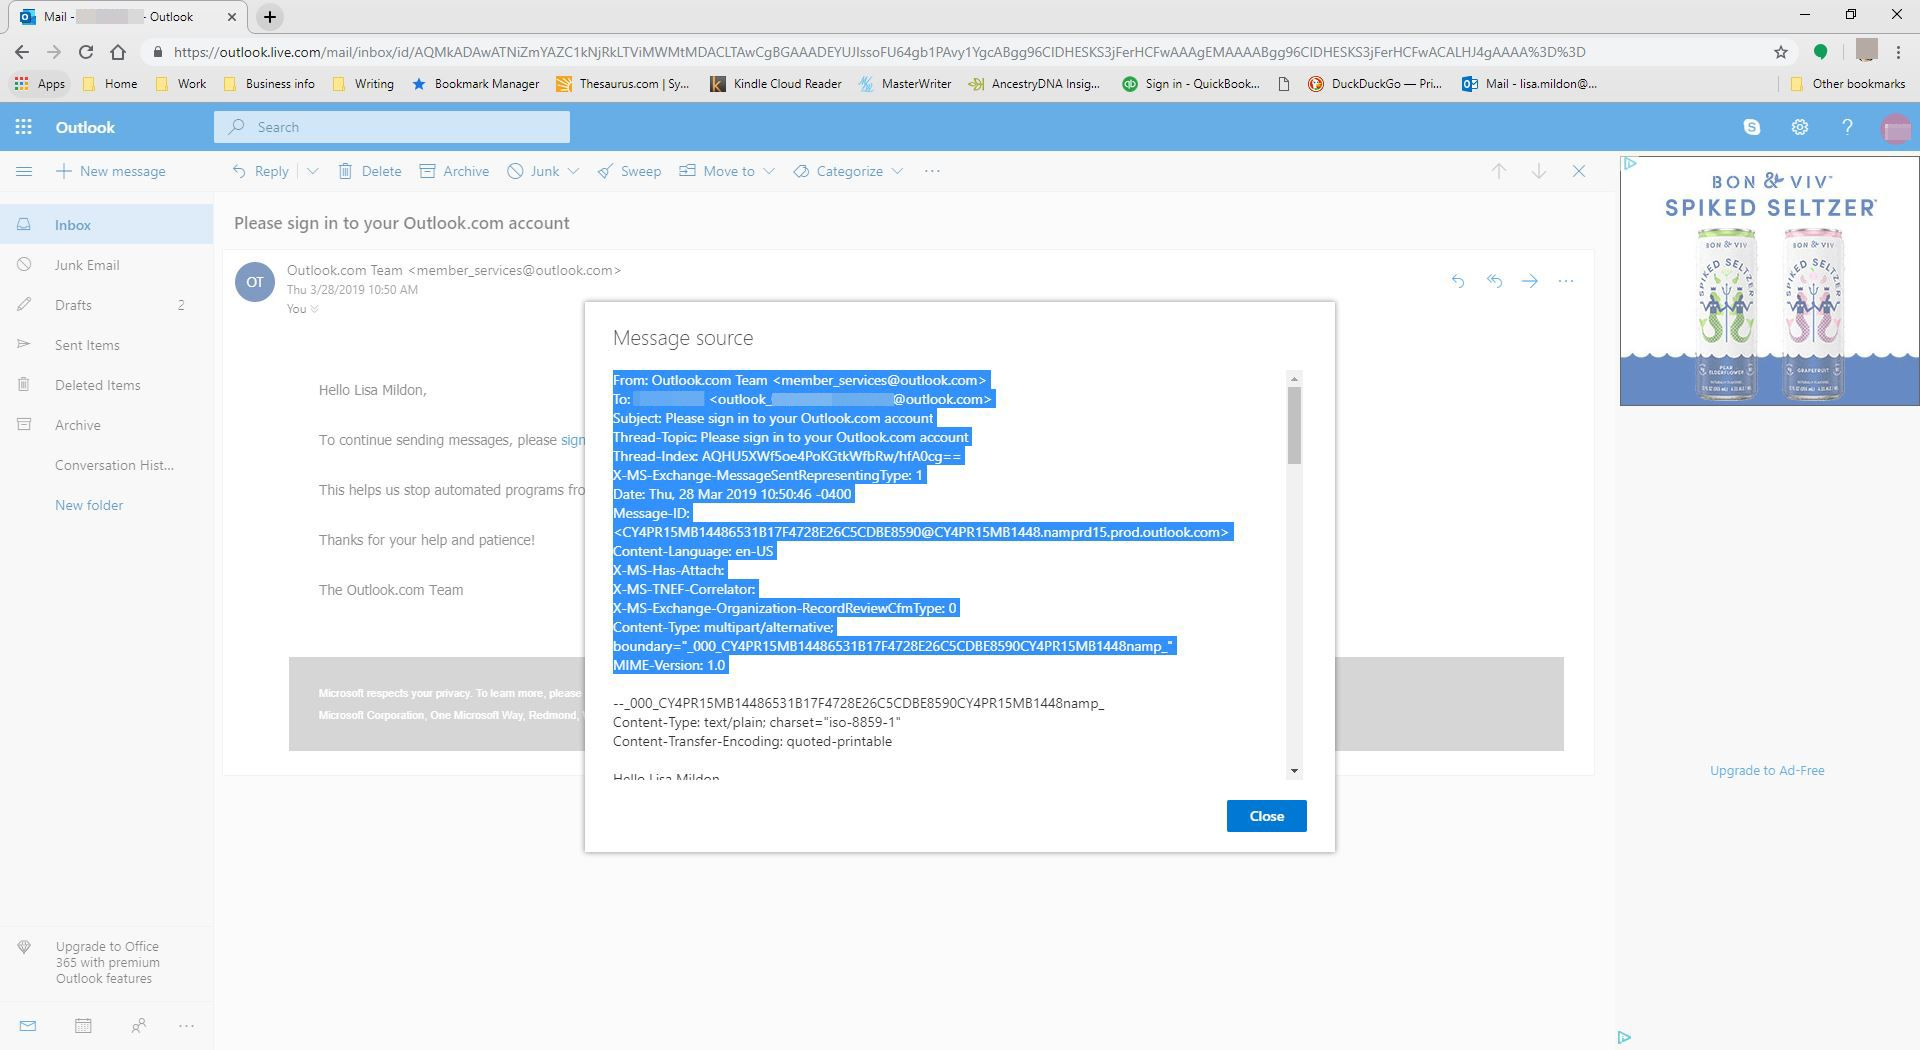 Viewing an email header in Outlook.com